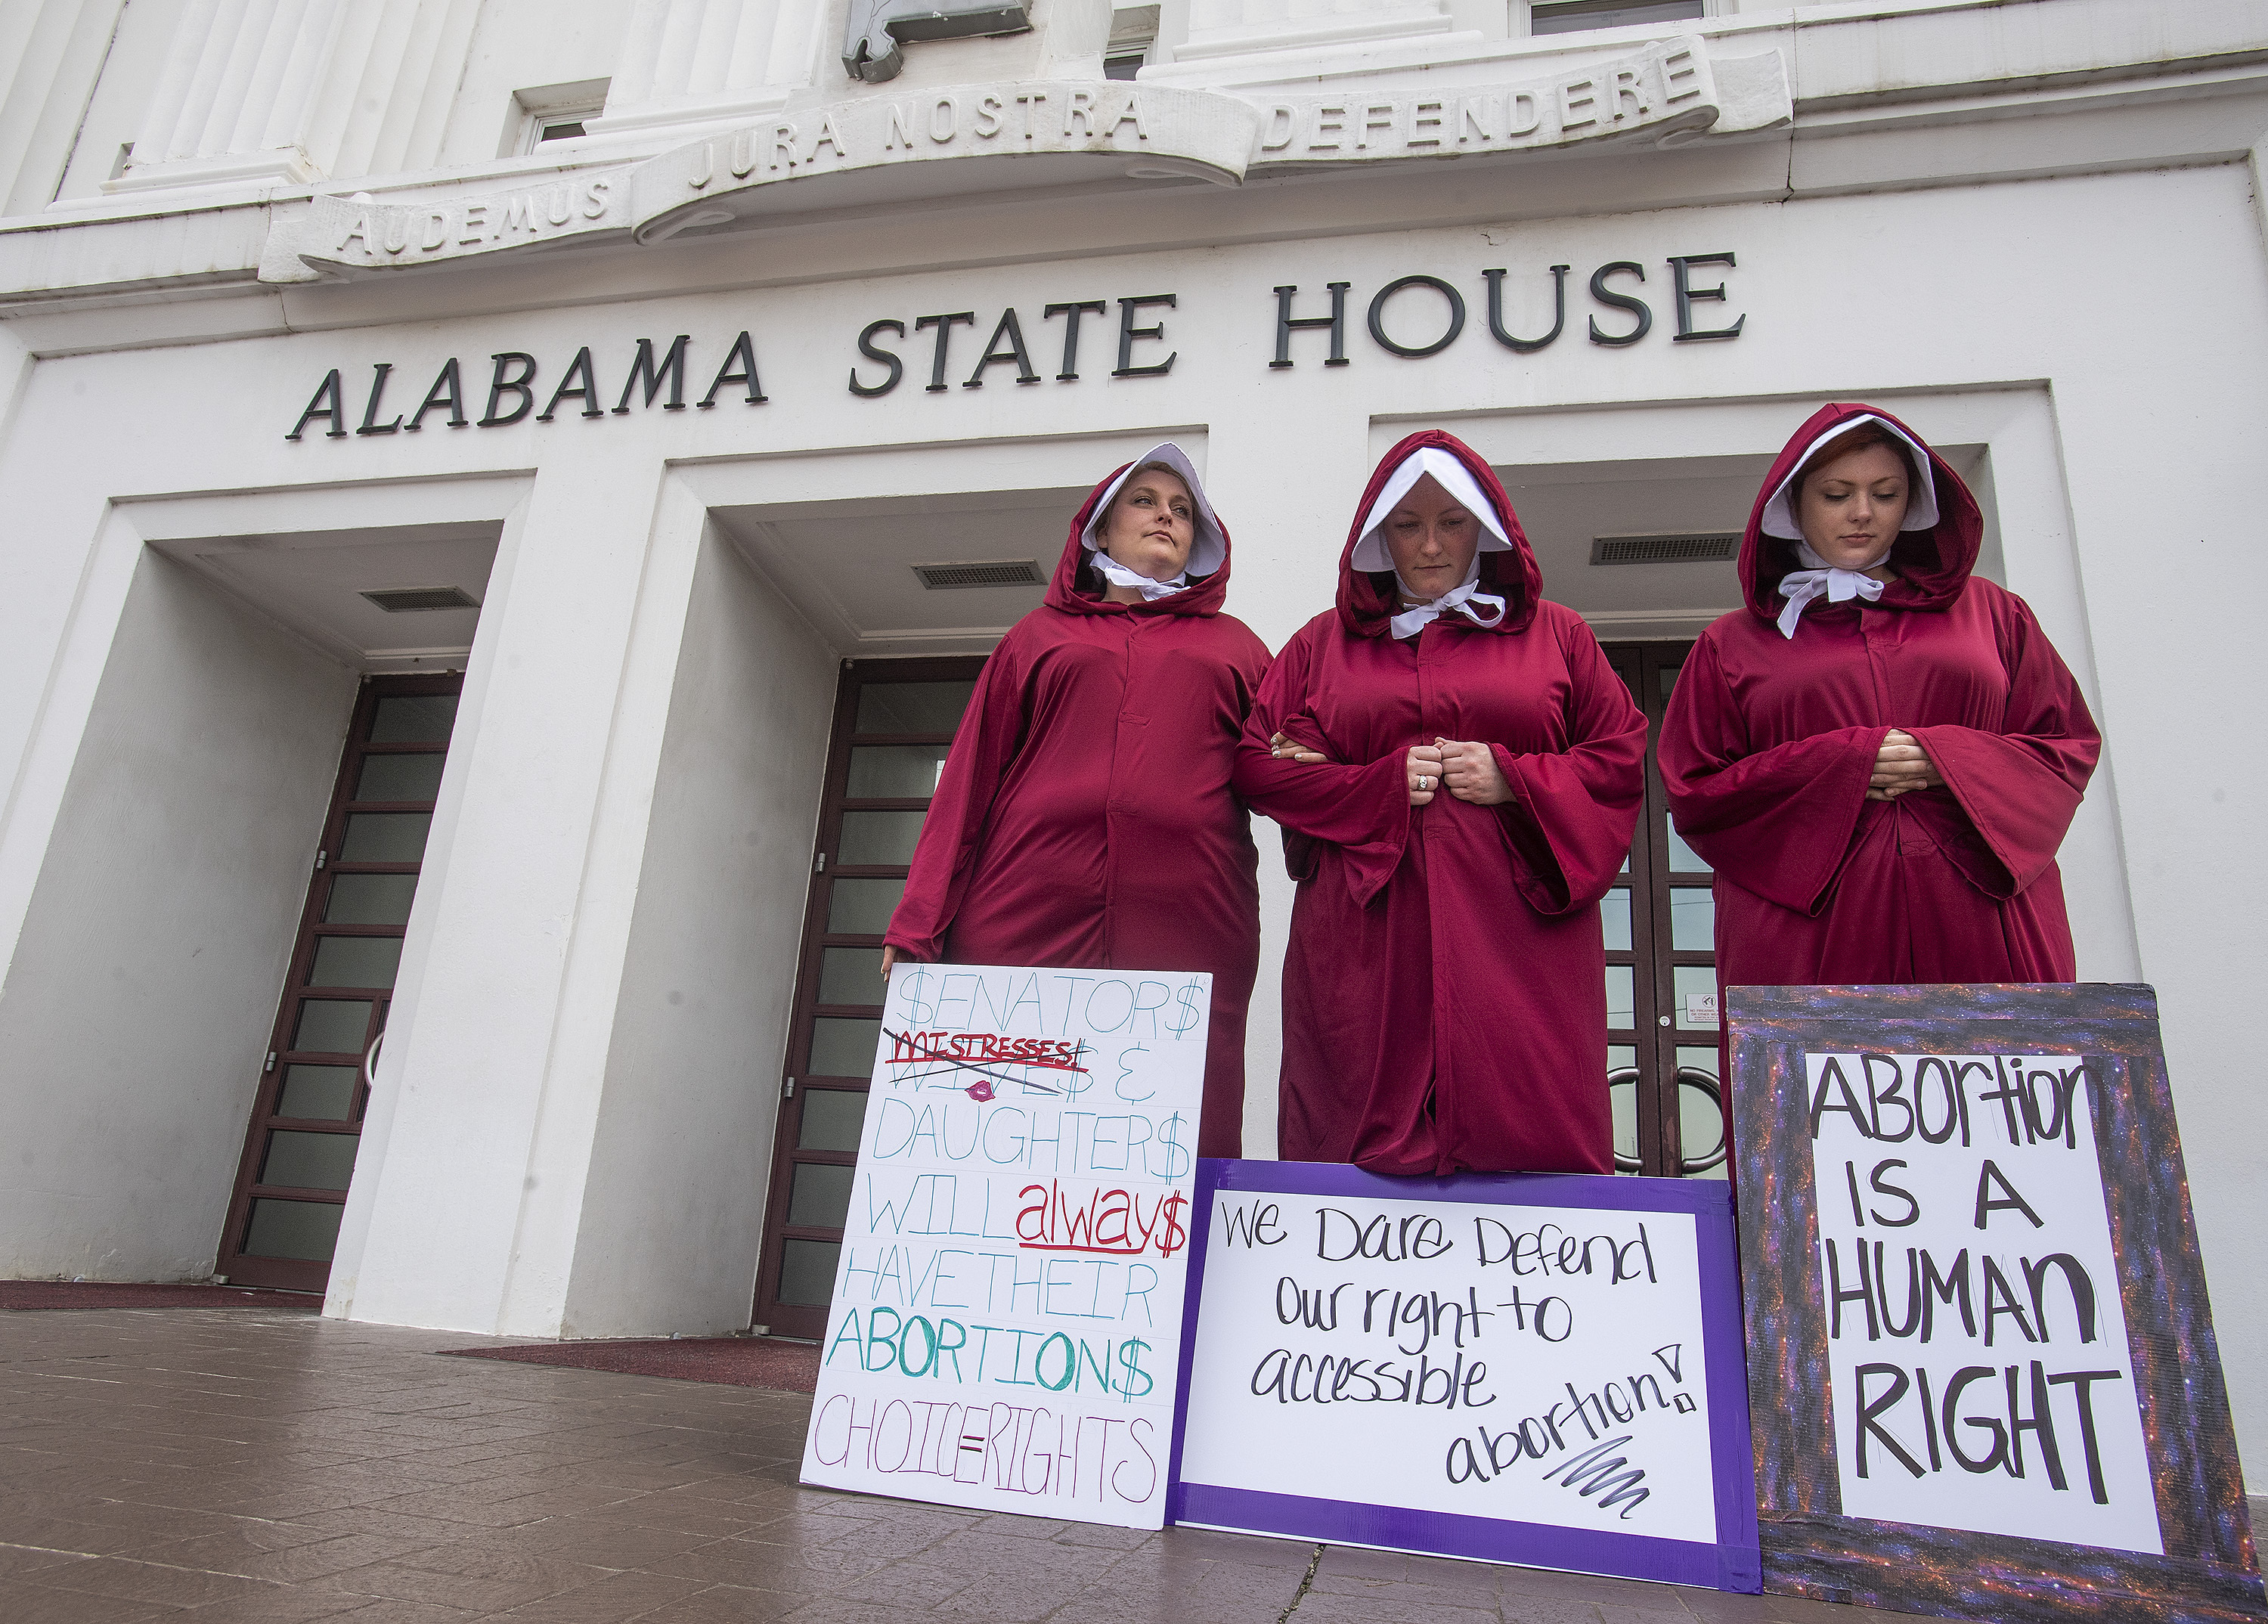 Bianca Cameron-Schwiesow, from left, Kari Crowe and Margeaux Hartline, dressed as handmaids, take part in a protest against HB314, the abortion ban bill, at the Alabama State House in Montgomery, Ala., on Wednesday April 17, 2019. (Mickey Welsh/The Montgomery Advertiser via AP)